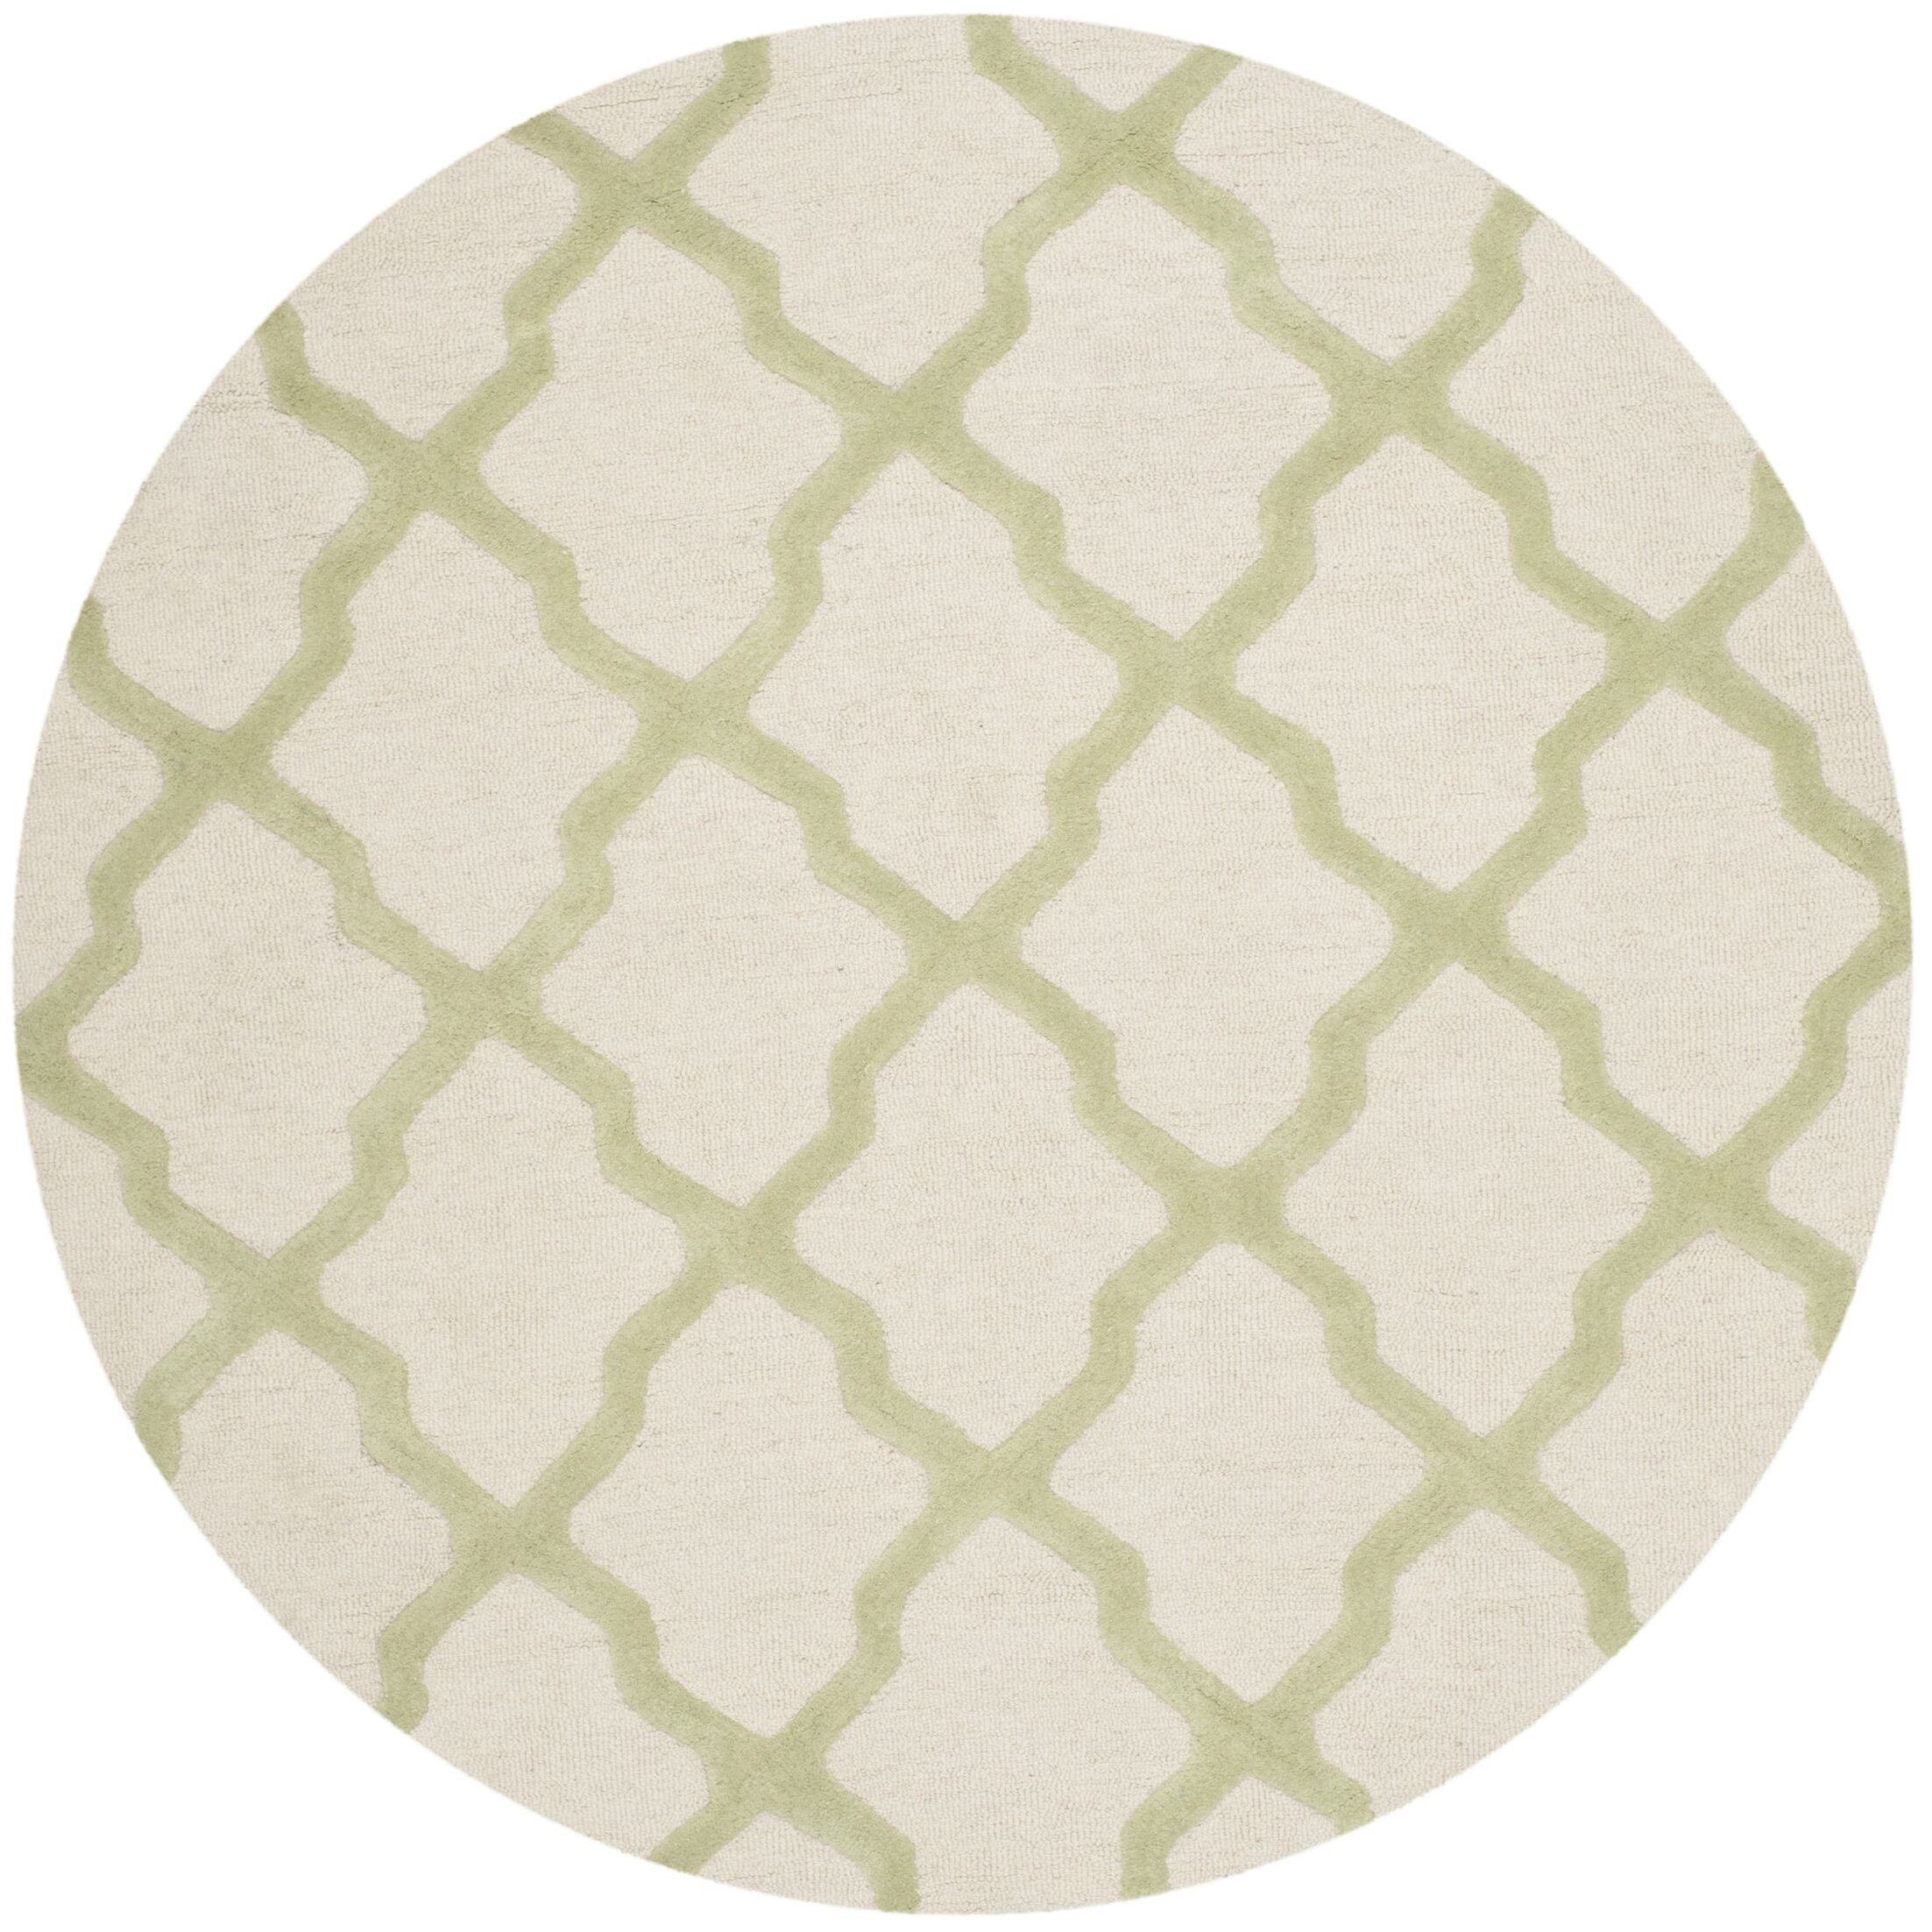 Gillam Hand-Tufted Ivory / Light Green Area Rug Rug Size: Round 6'